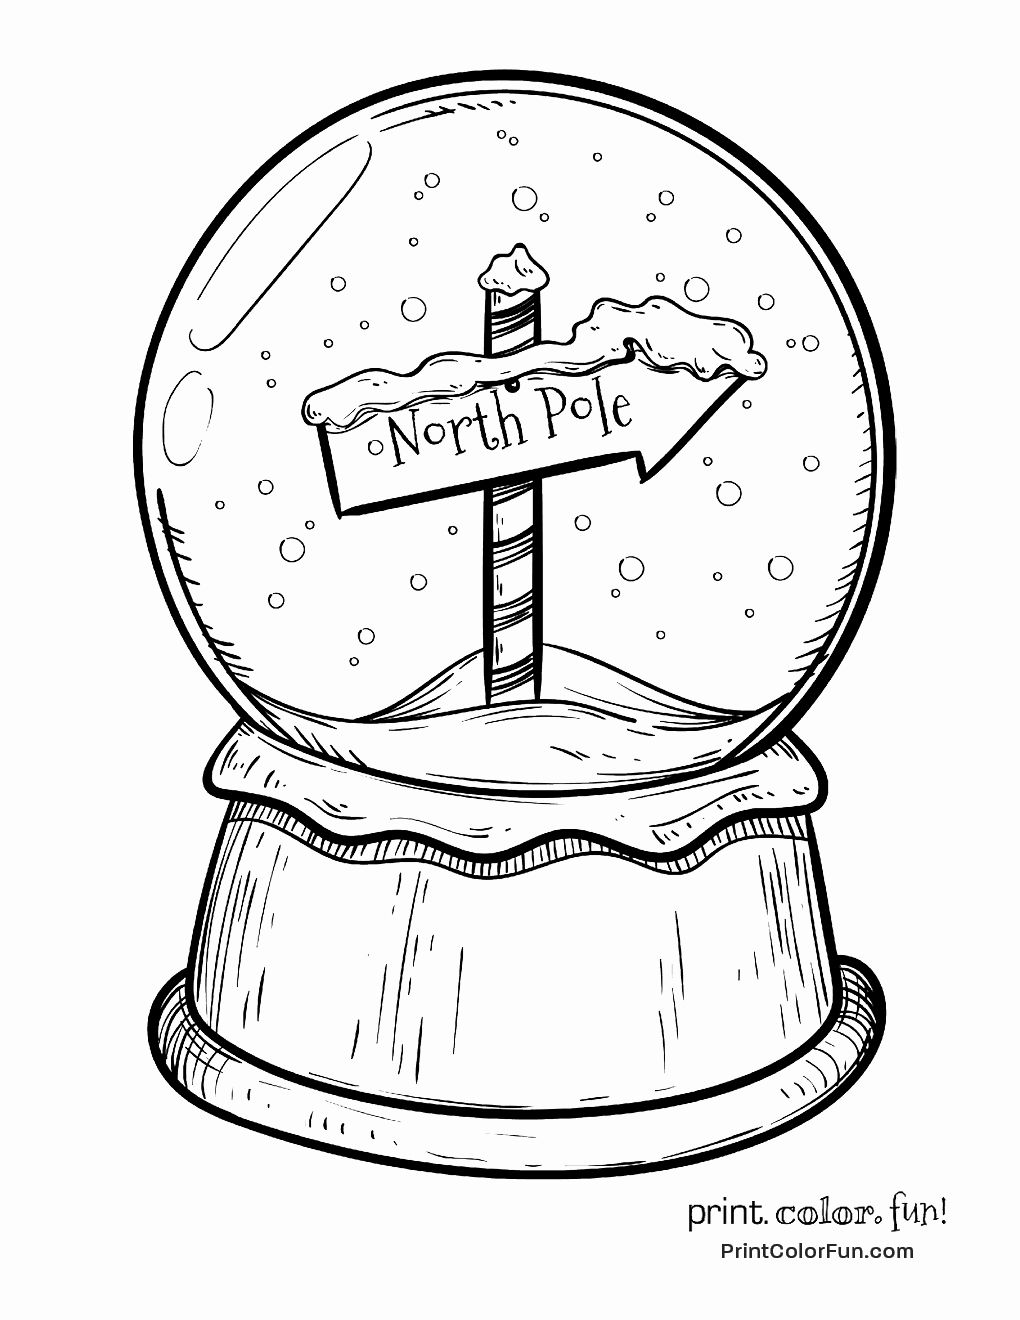 Snow Globe Coloring Page Best Of Christmas Snow Globe With North Pole Sign Coloring Page In 2020 Snow Globes Christmas Snow Globes Christmas Drawing